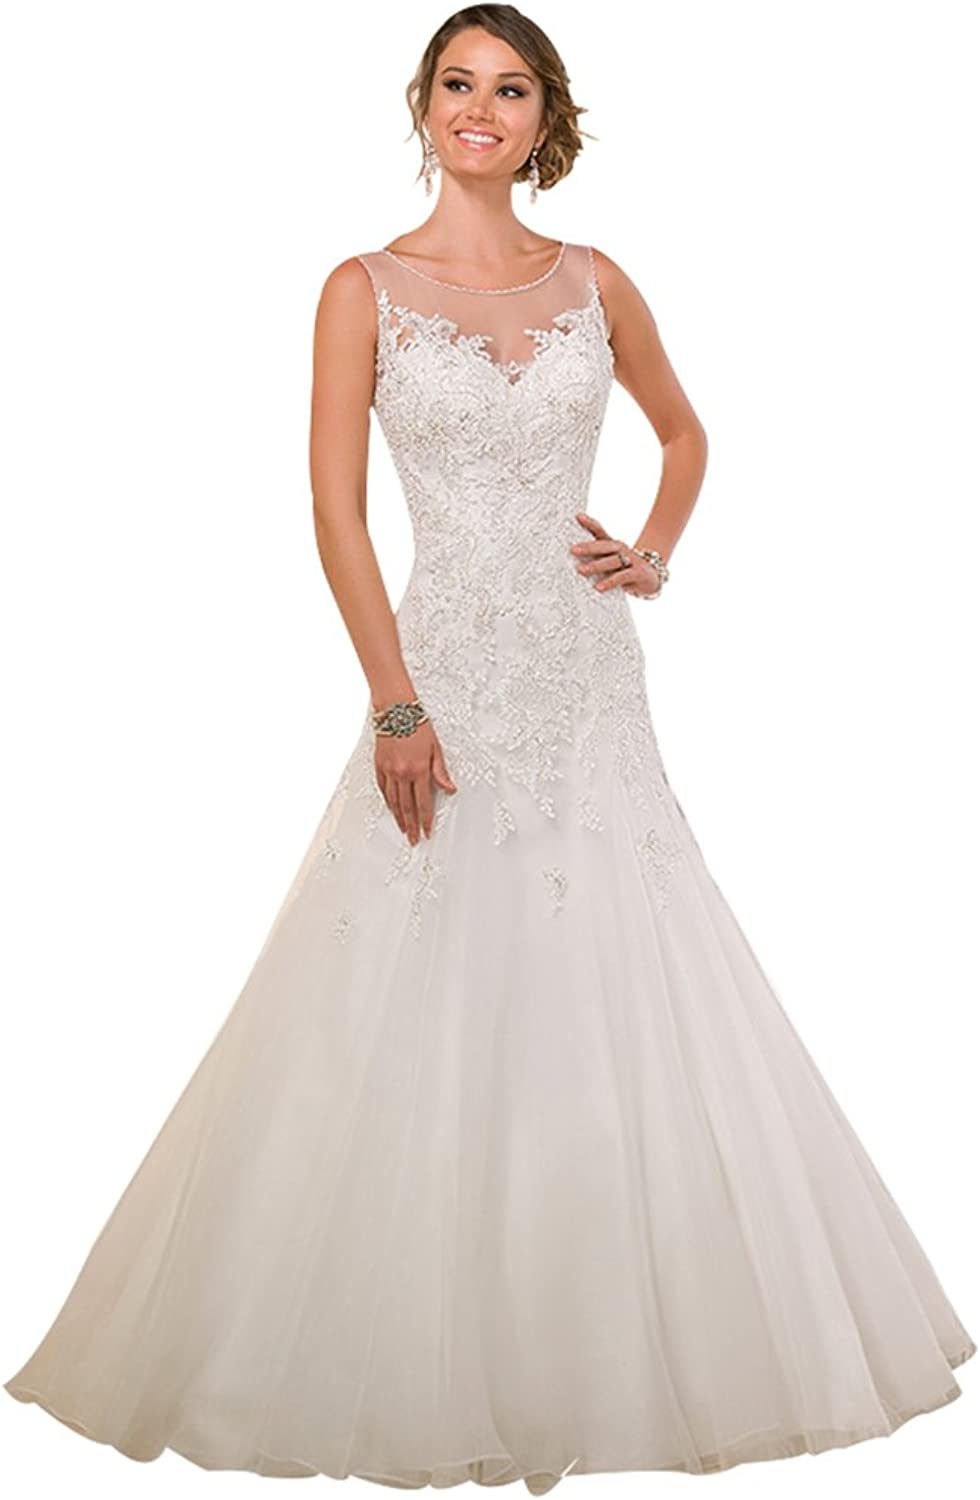 JoyVany Sheer Lace Wedding Dress Romantic Shoulder Straps Wedding Gowns Train